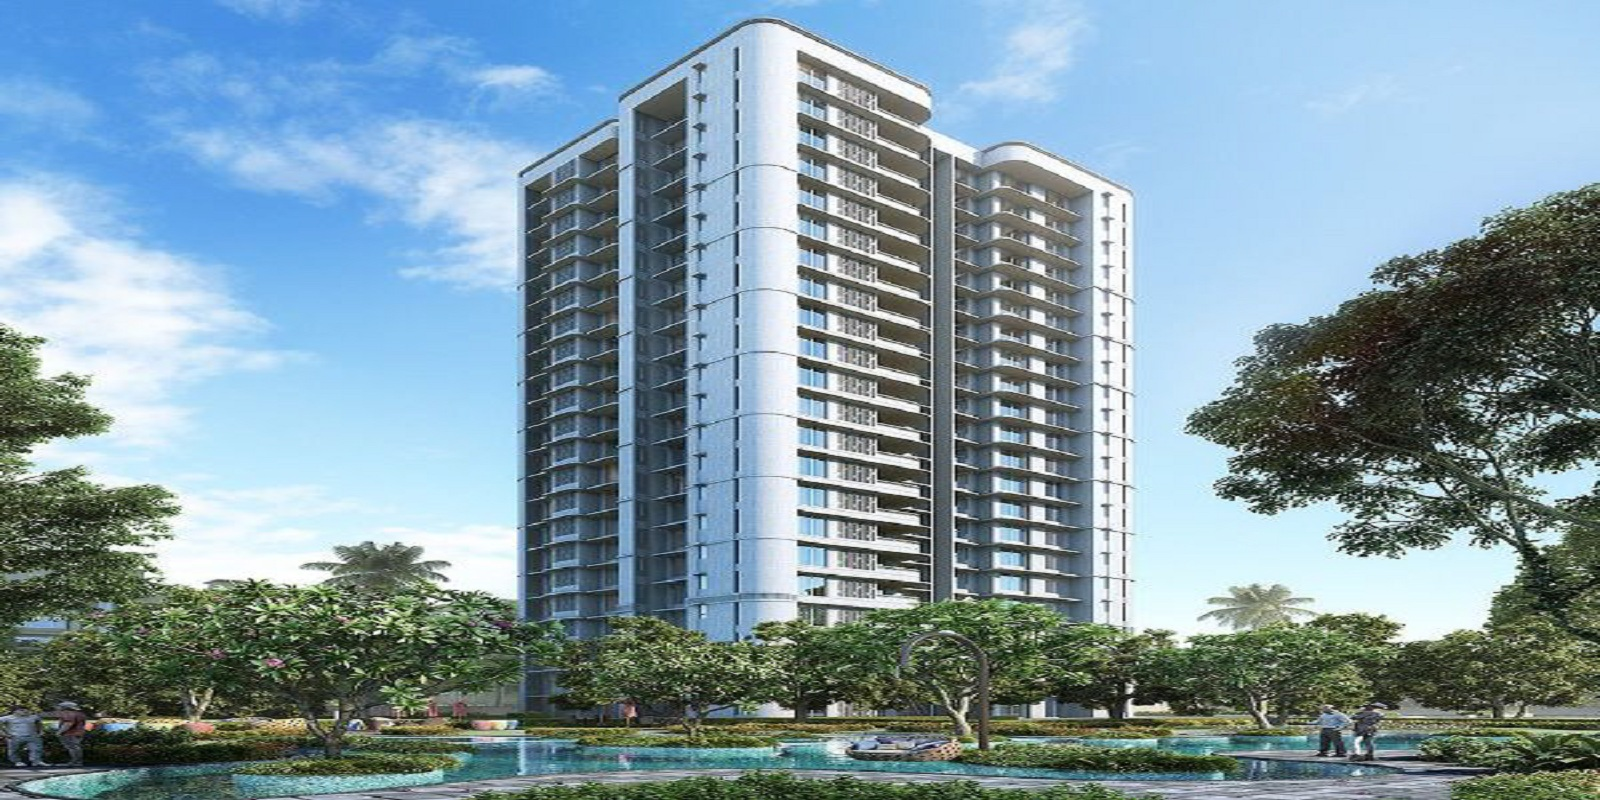 lodha patel estate tower e and f project large image2